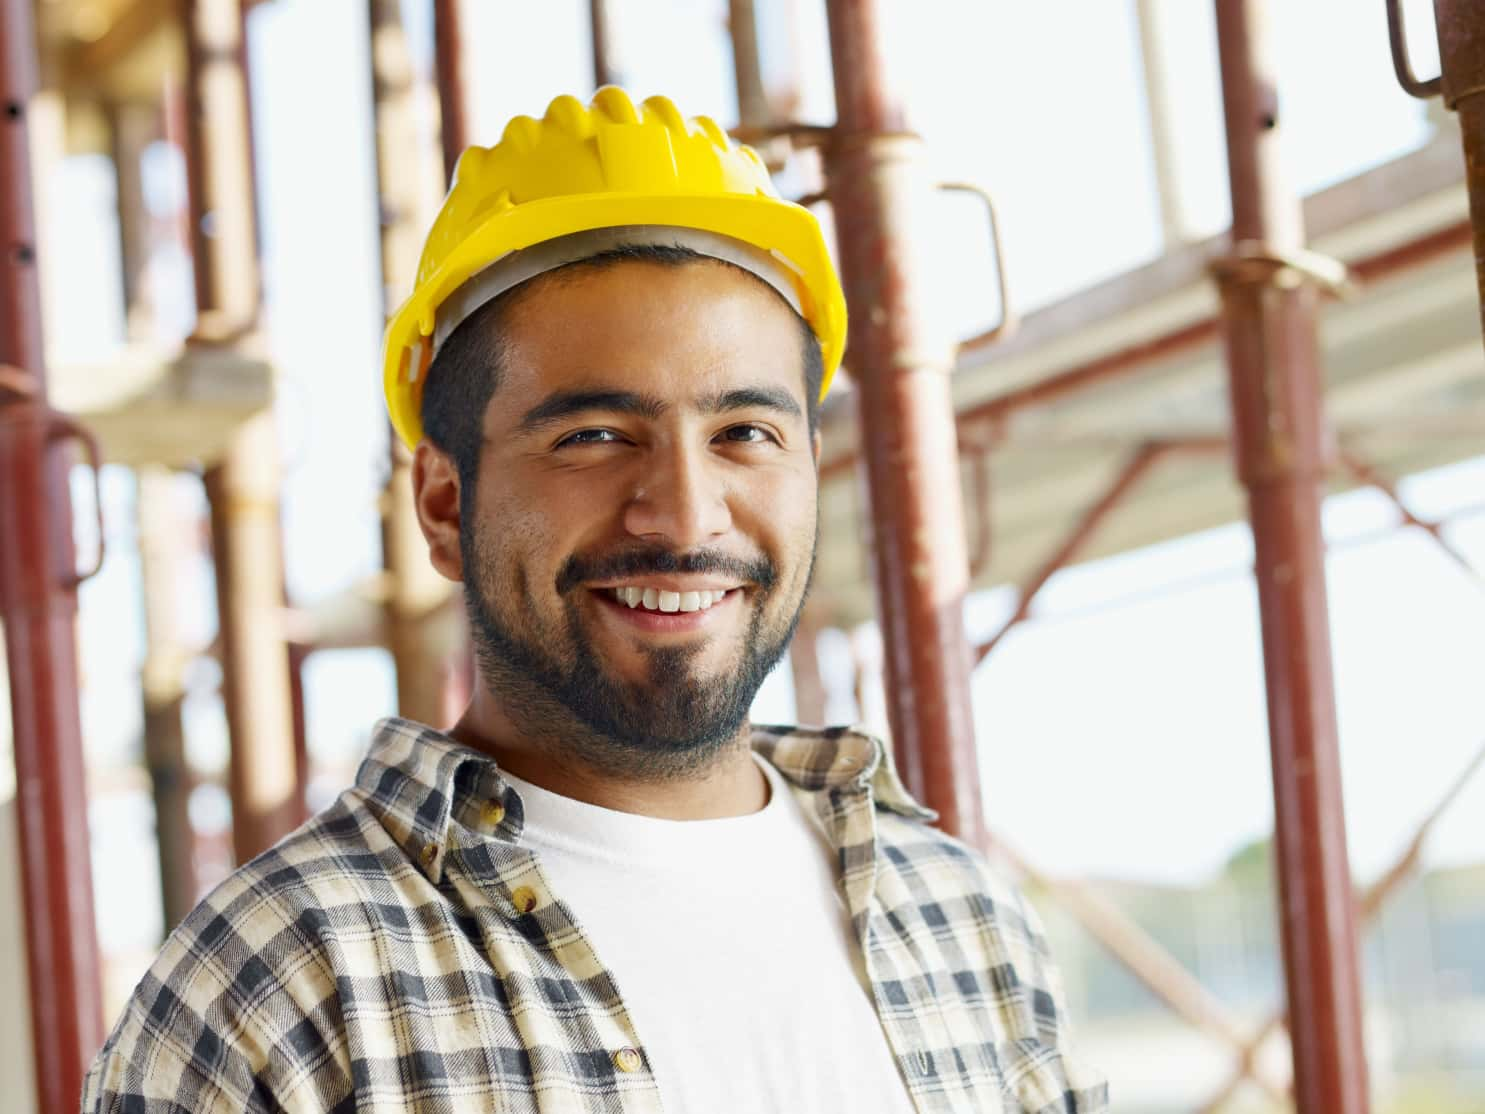 technician yellow hard hat smiling job site